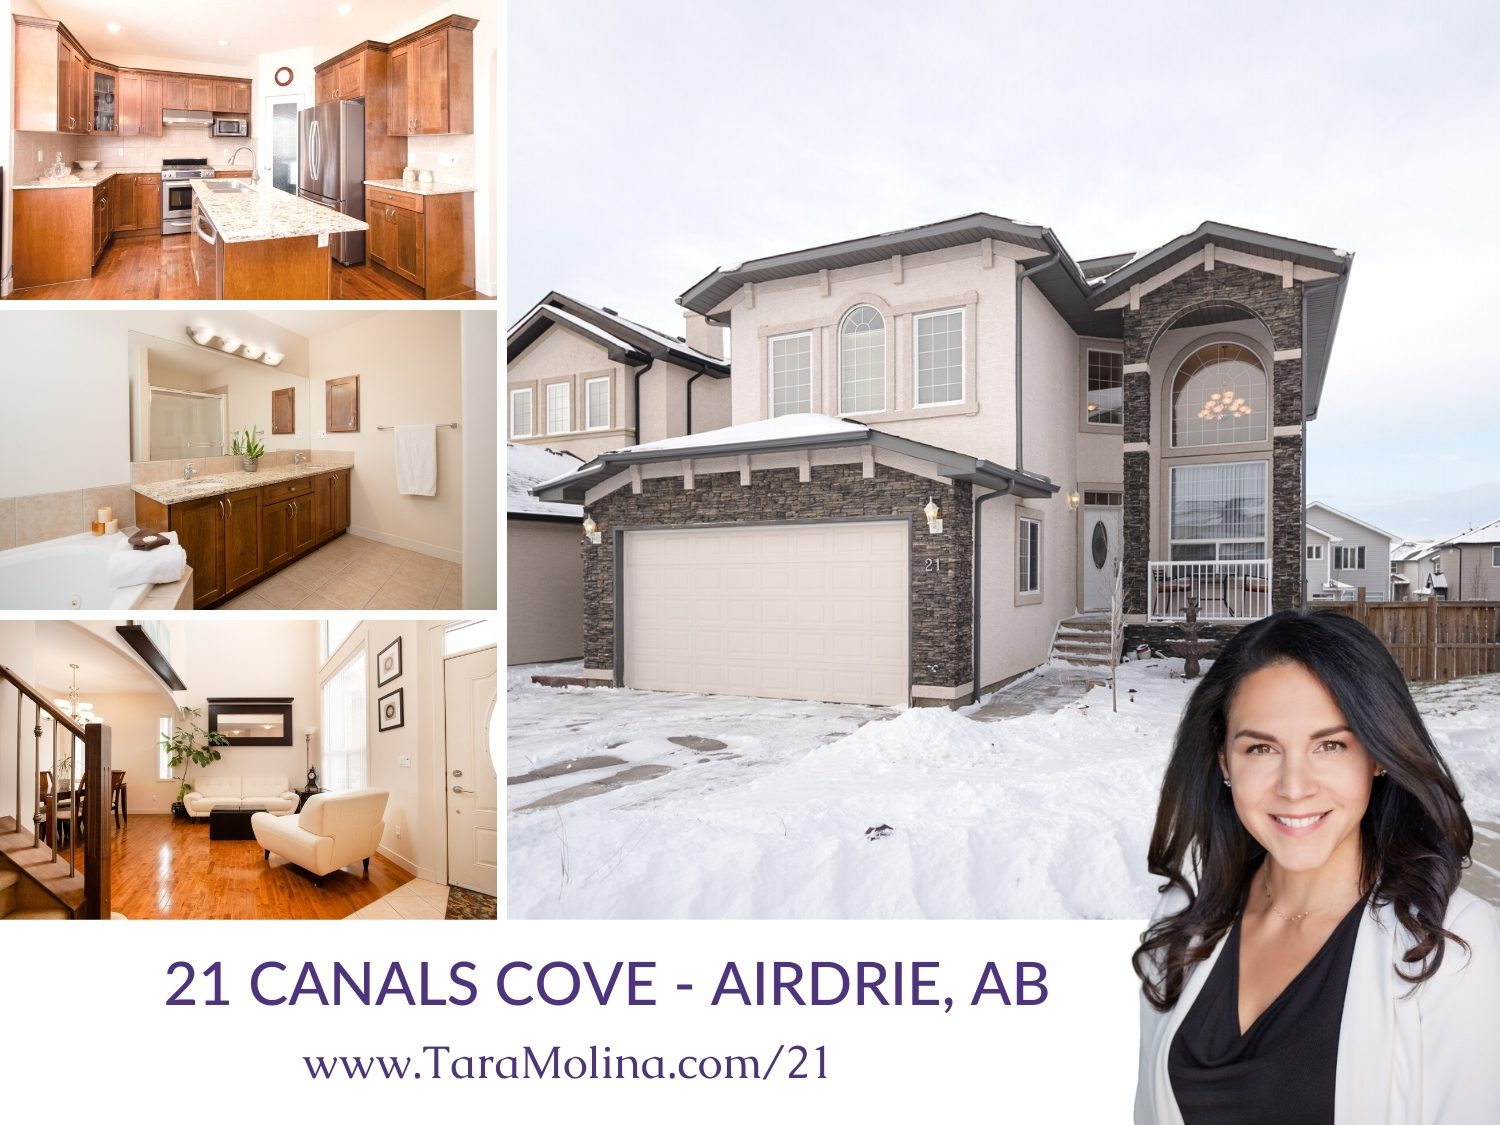 21 Canals Cove in Airdrie, AB